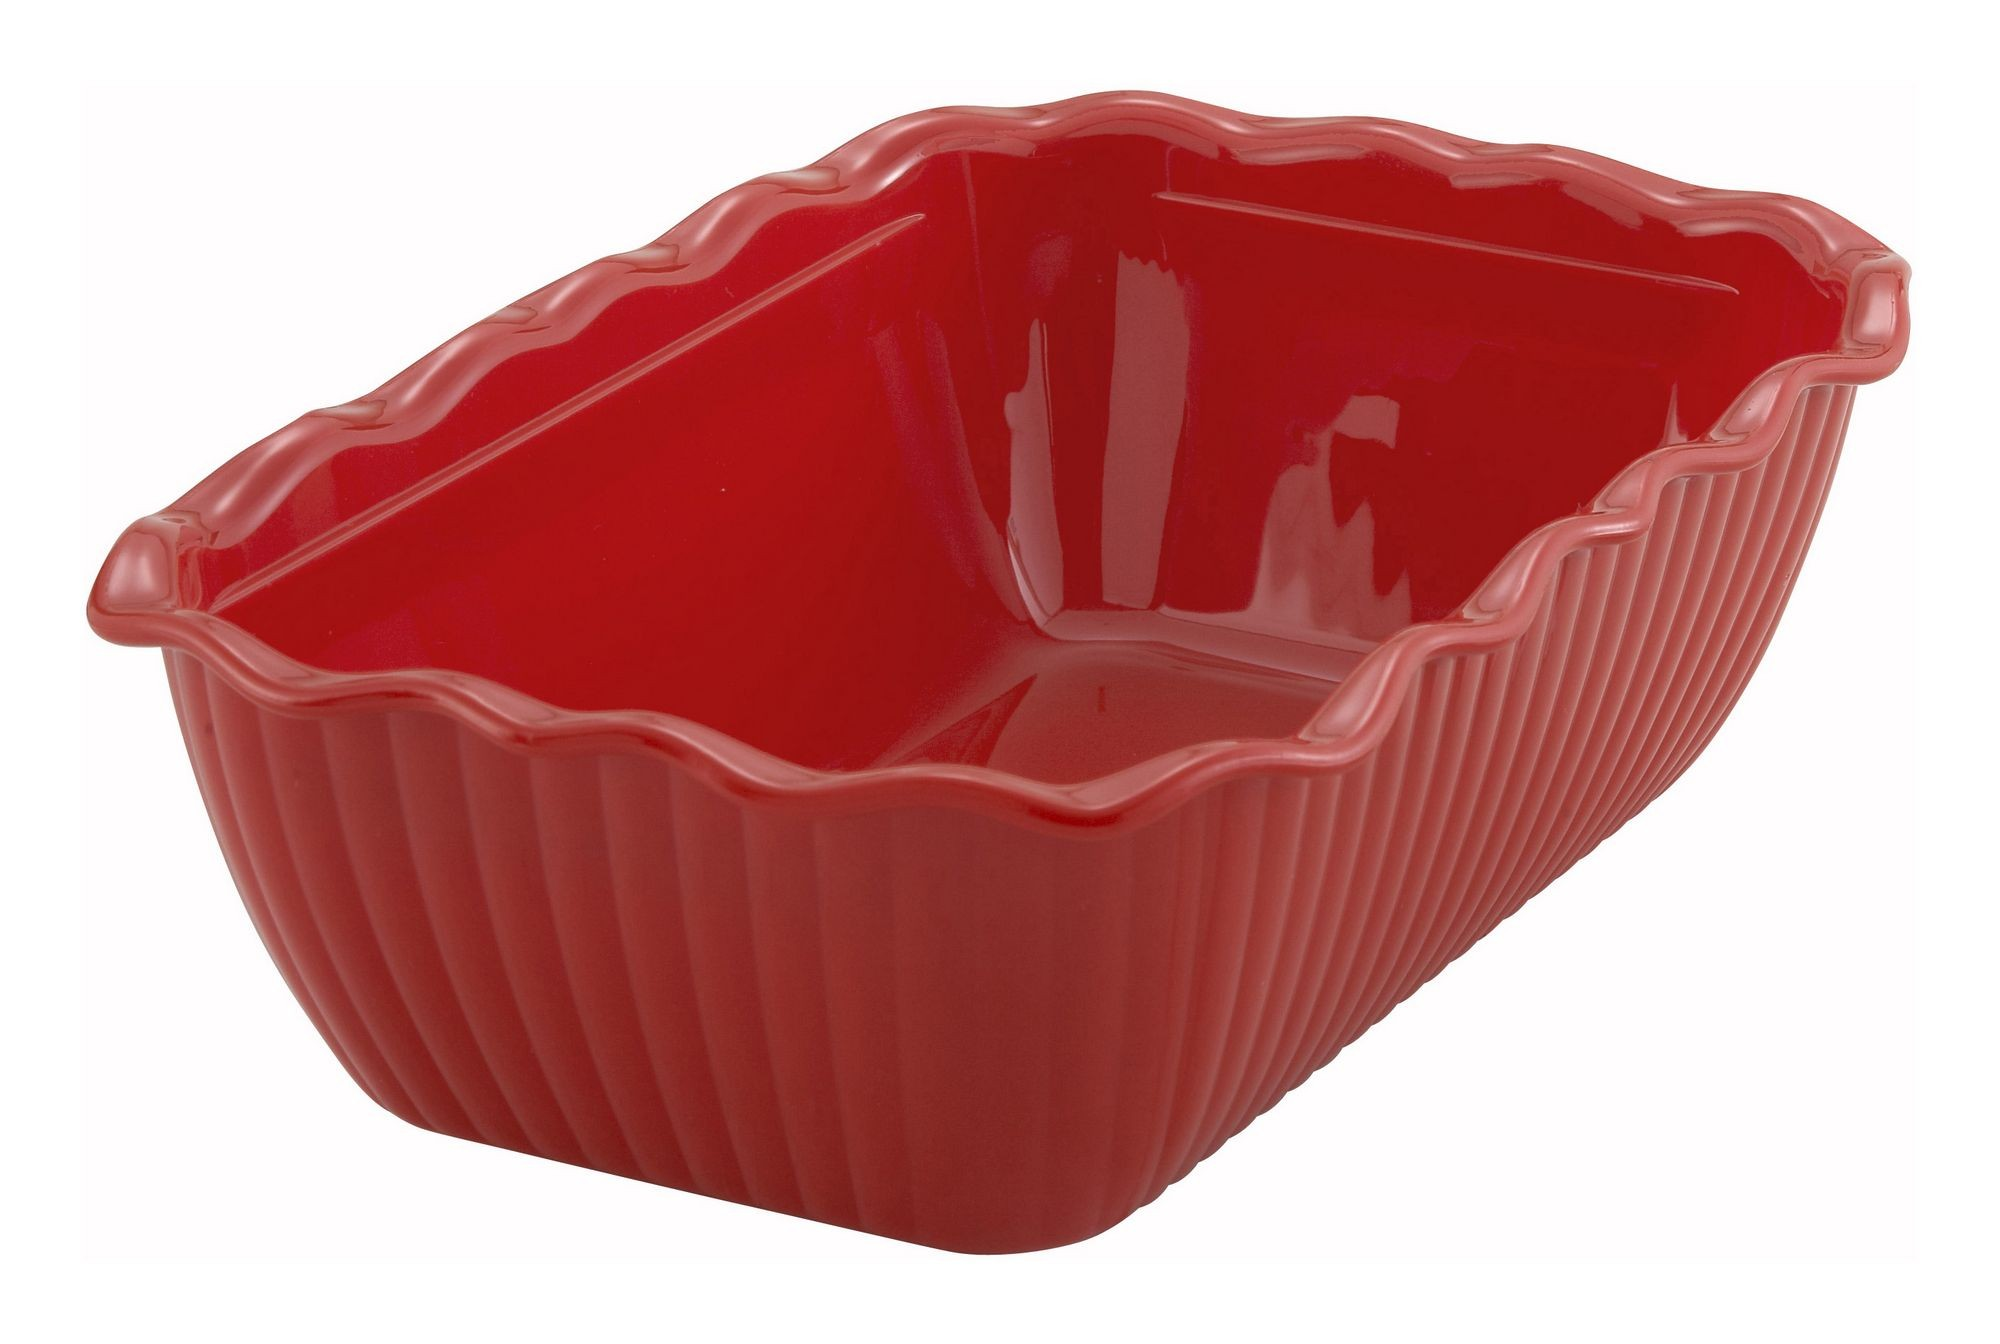 Red-Colored Deli Crock - 10 X 7 X 3 (Cover not included)